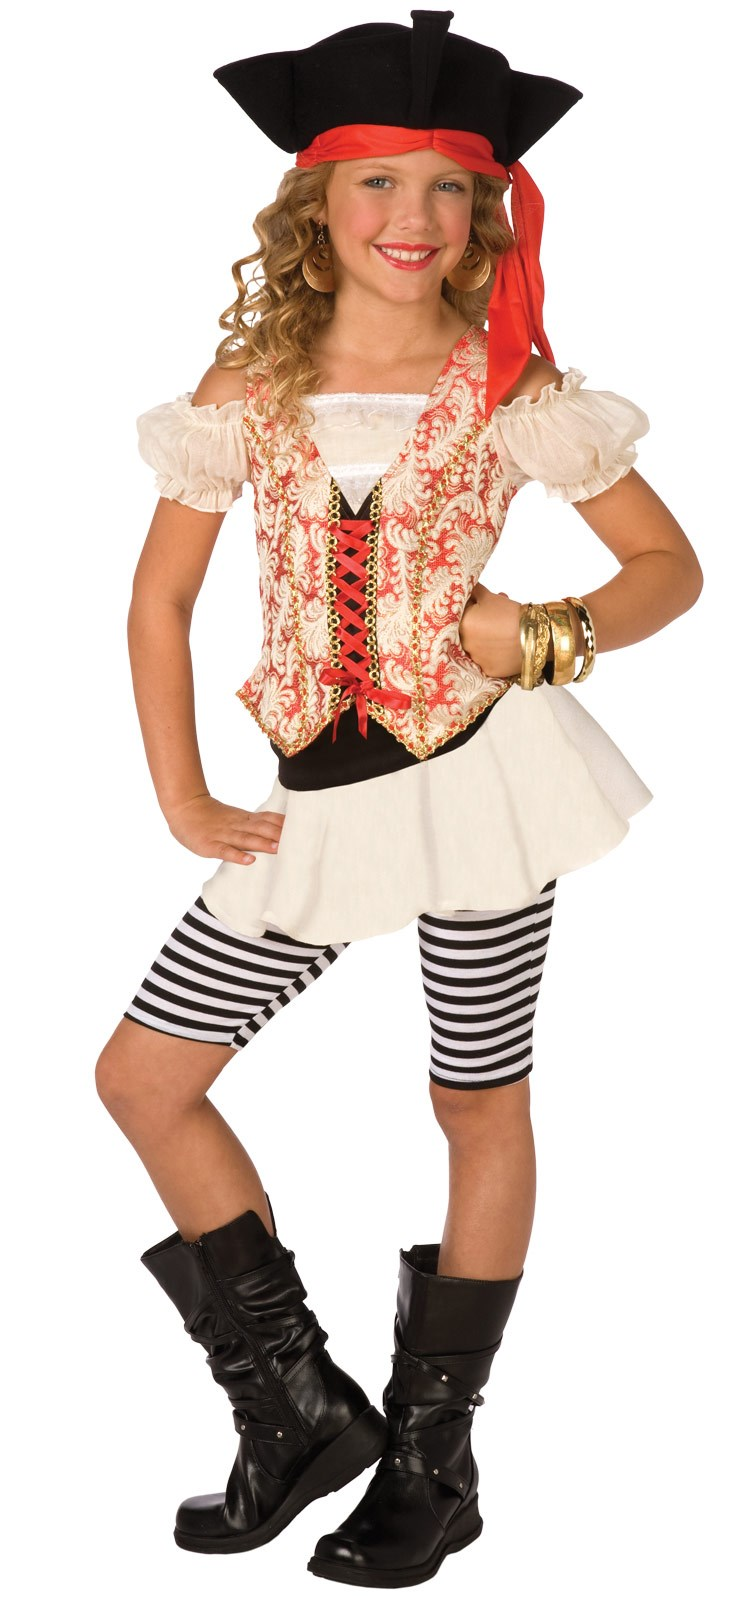 Swashbuckler Child Costume 8-10 MED